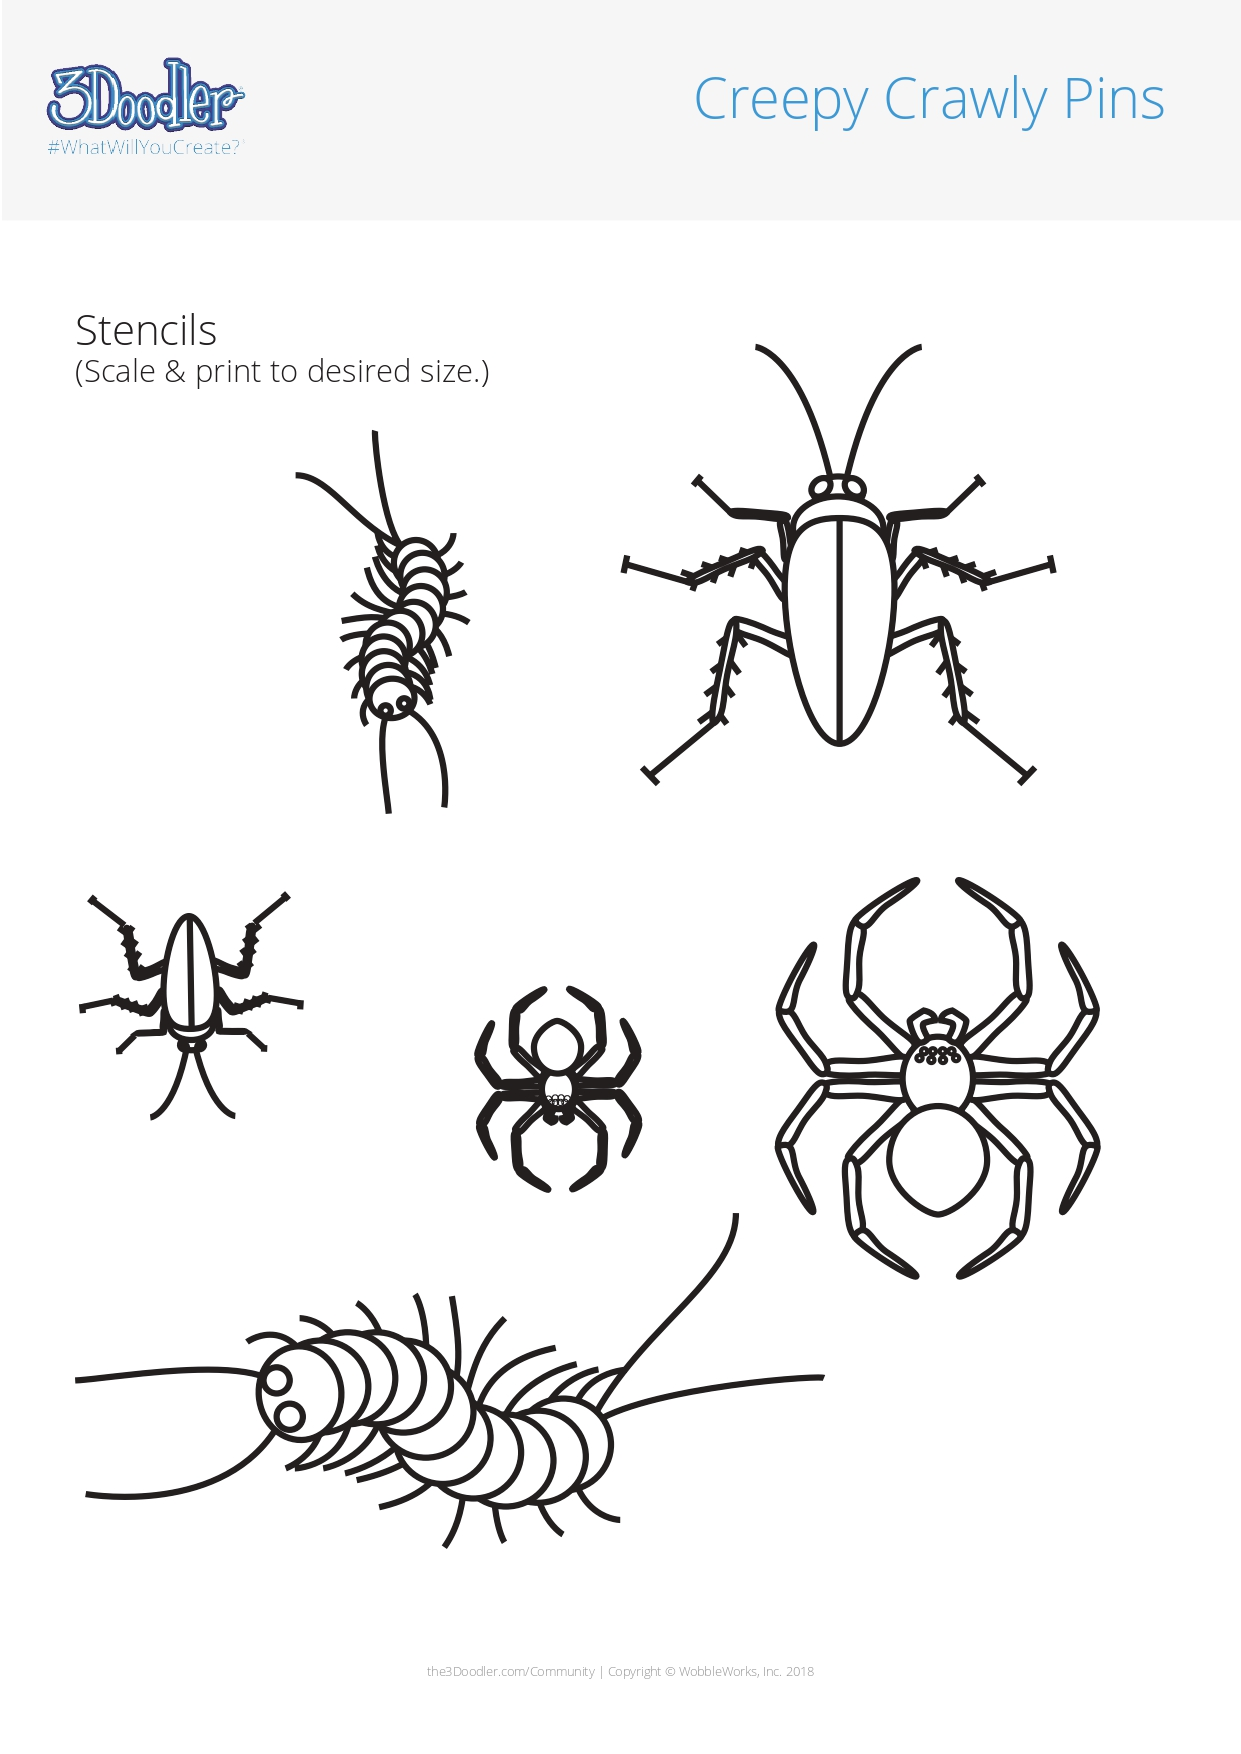 3D Pen Stencil Template Creepy Crawly Pins